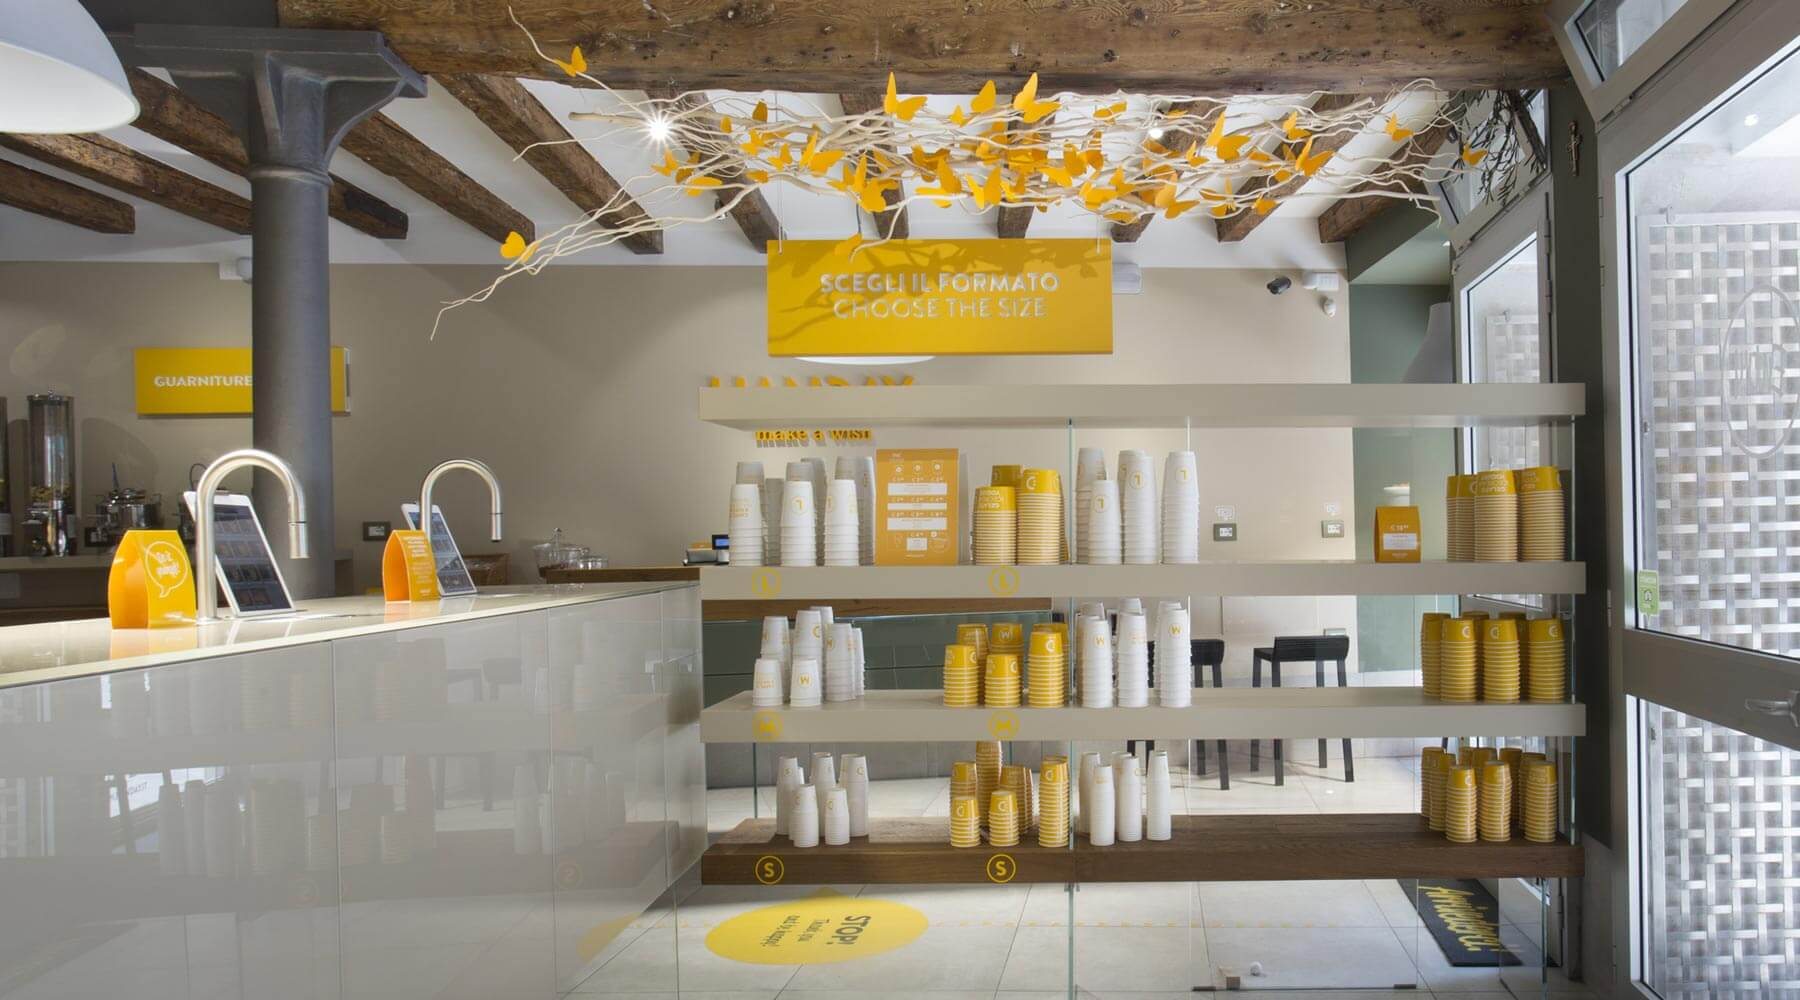 Gelateria handay mobili di design lago for Mobili di design uk